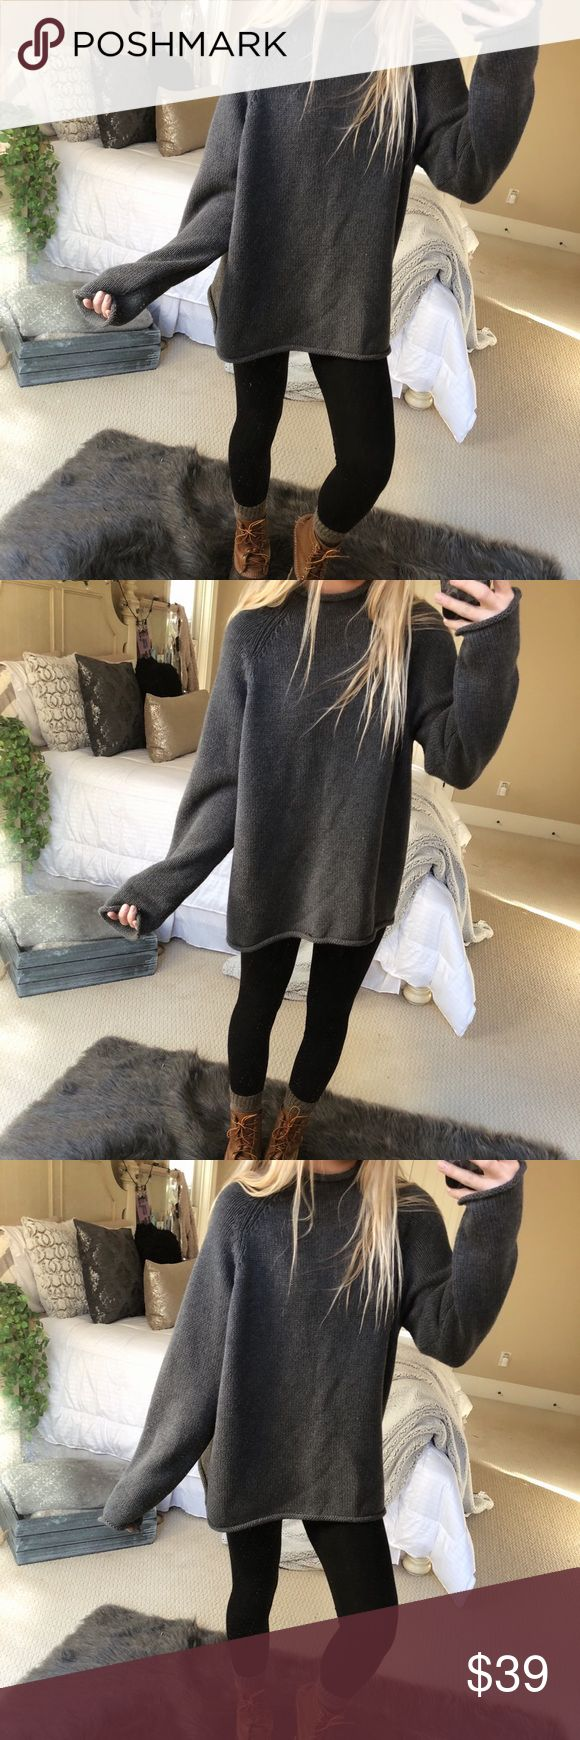 charcoal chunky mock neck knit gorgeous charcoal grey chunky mock neck knit sweater. super cozy and thick! fits a size medium or large 🌲🍂☕️ — * all offers 100% welcomed + encouraged * bundle for a private discount of at least 20% off  * orders guaranteed to ship within 1-2 days unless stated otherwise * ask me any questions if you ever have any! xo Sweaters